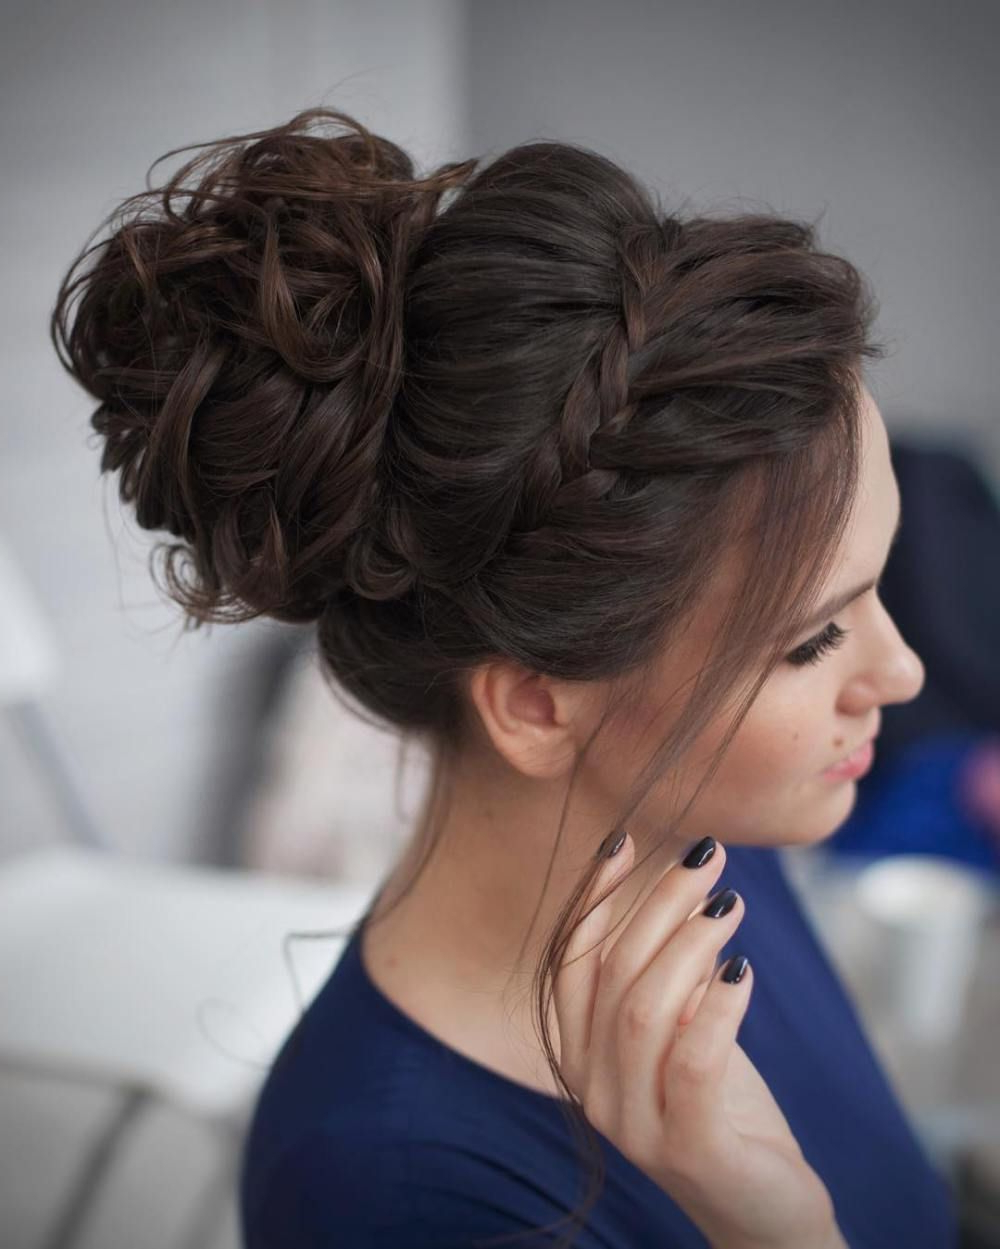 Hair For Well Liked Braided Chignon Hairstyles (Gallery 6 of 20)